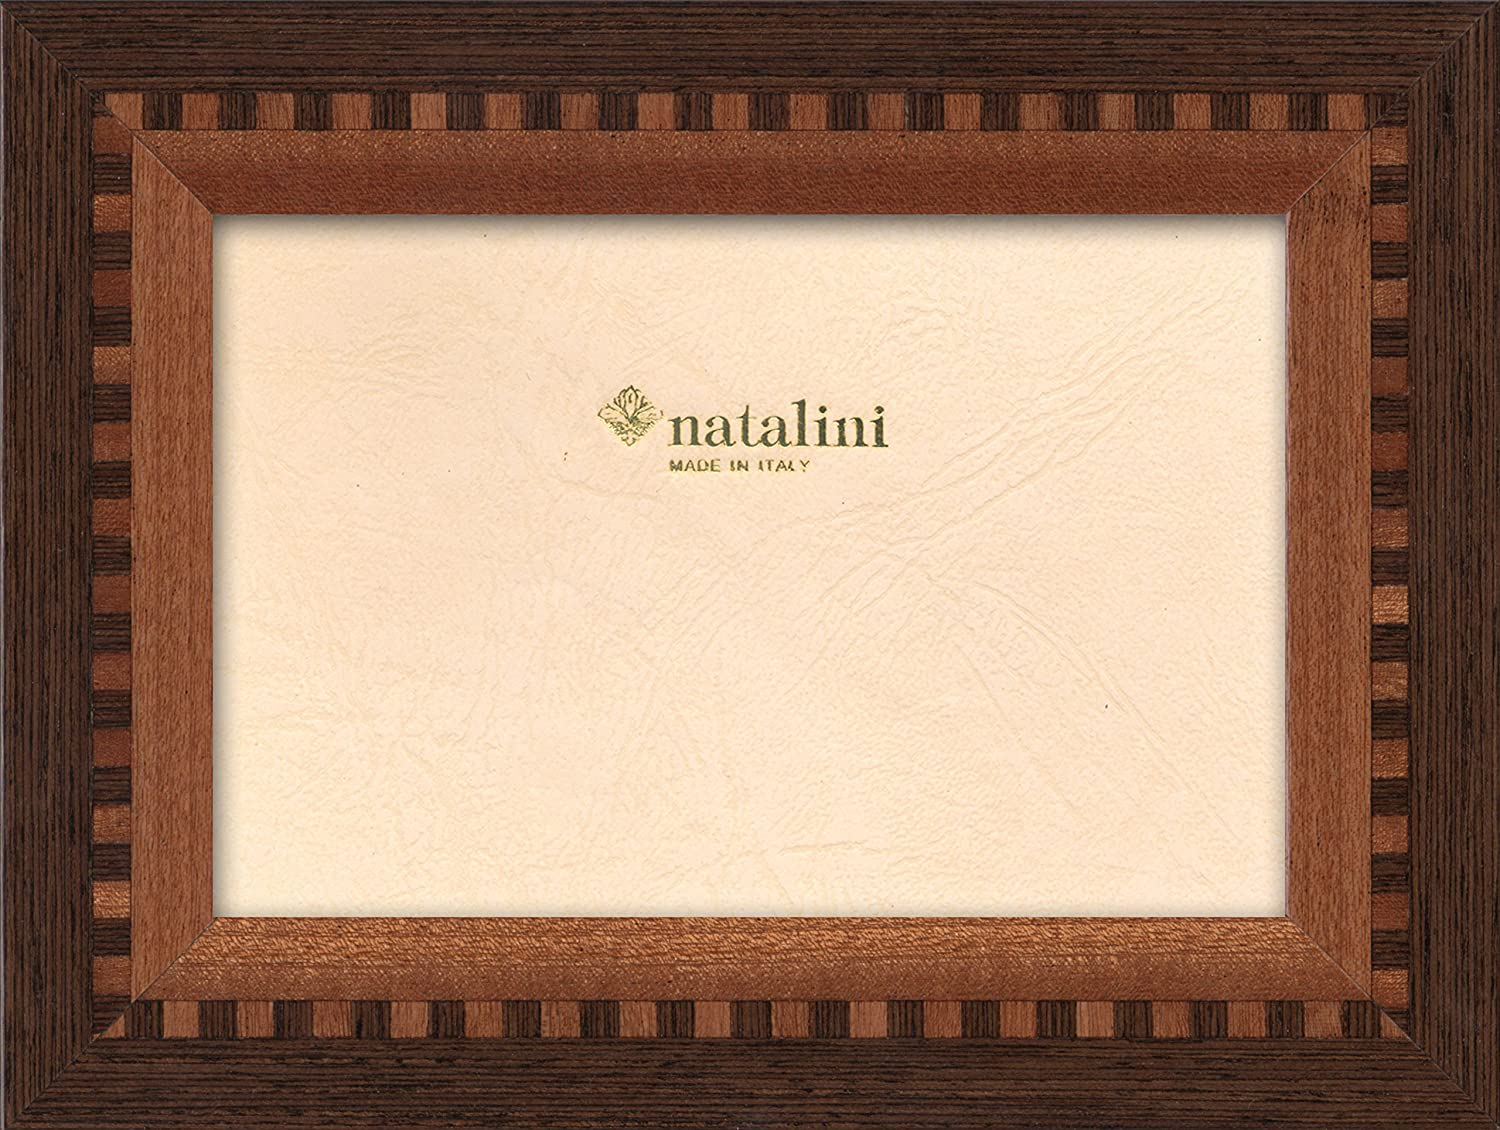 Black Tulipwood 5X 7 Natalini Marquetry Photo Frame Made in Italy